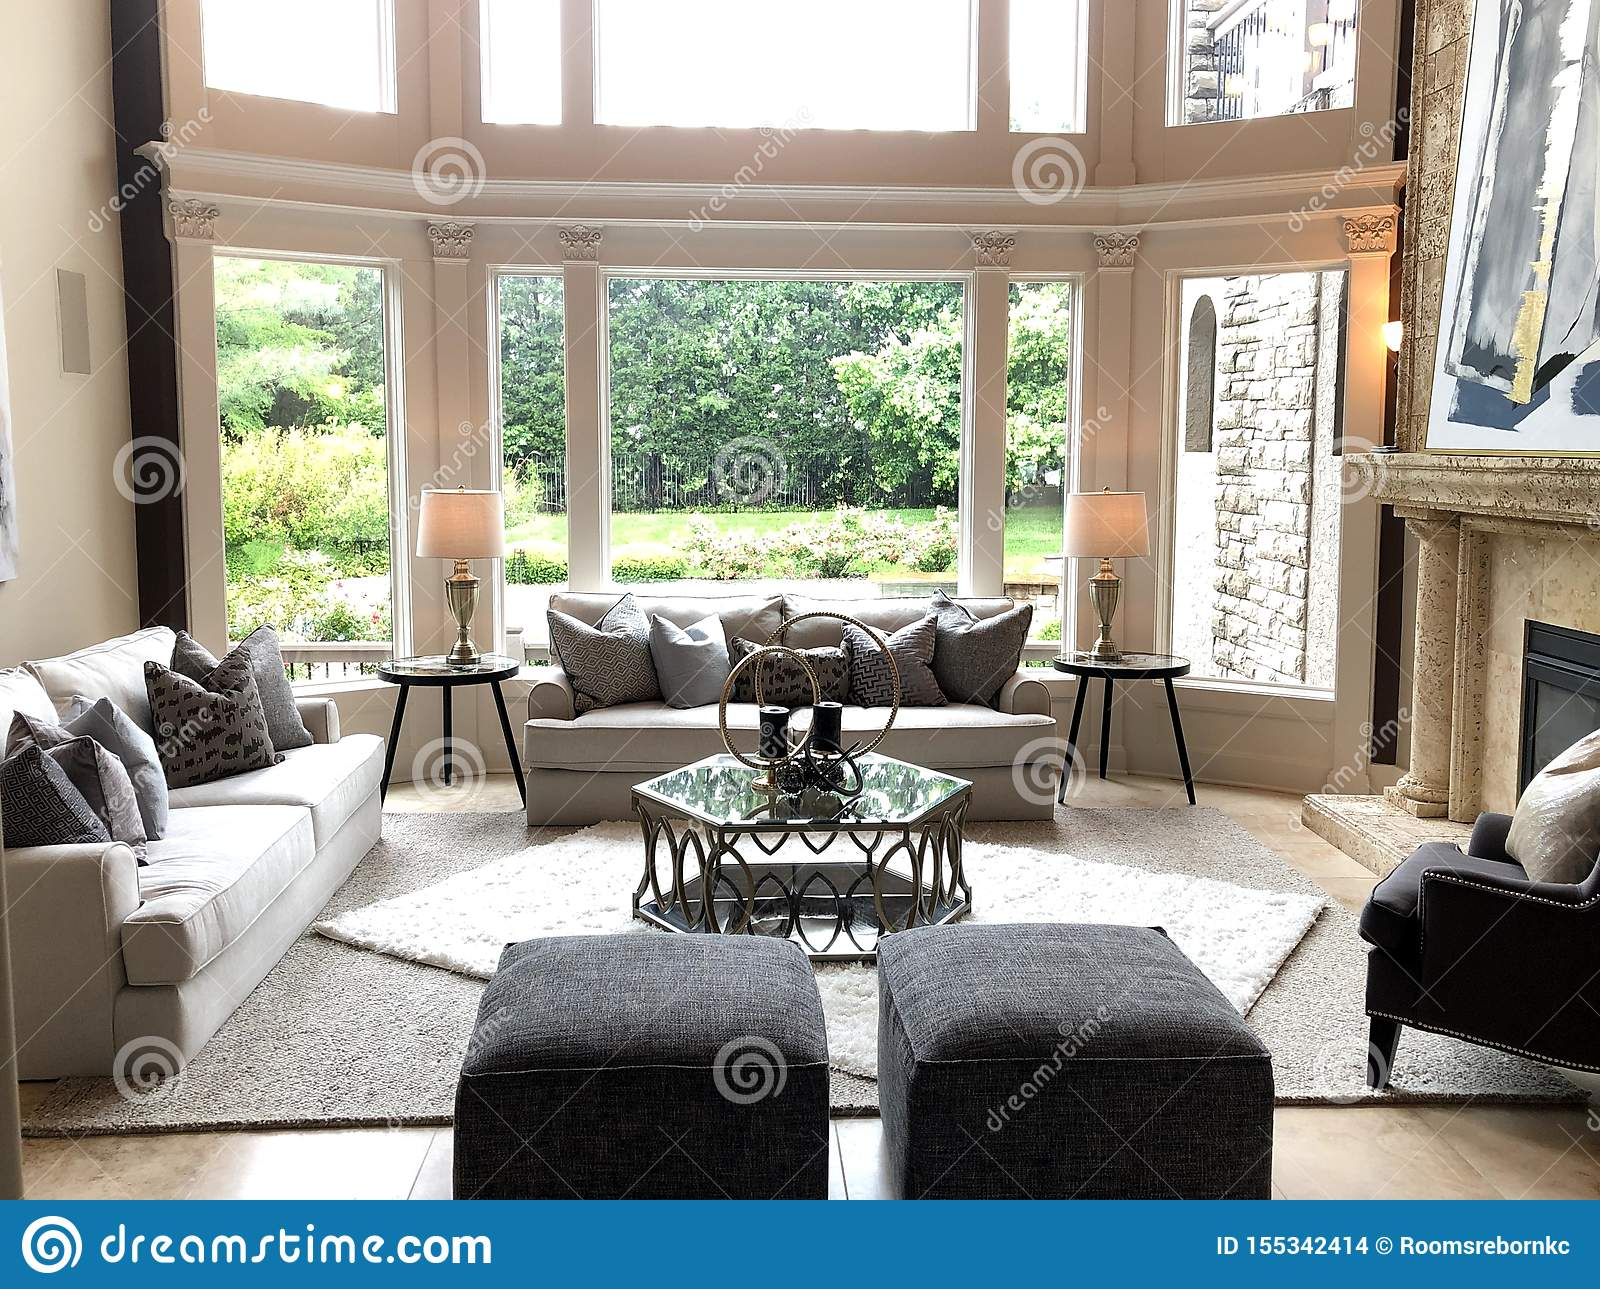 modern great room large windows traditional living exudes fort asymmetrical space balance achieved both